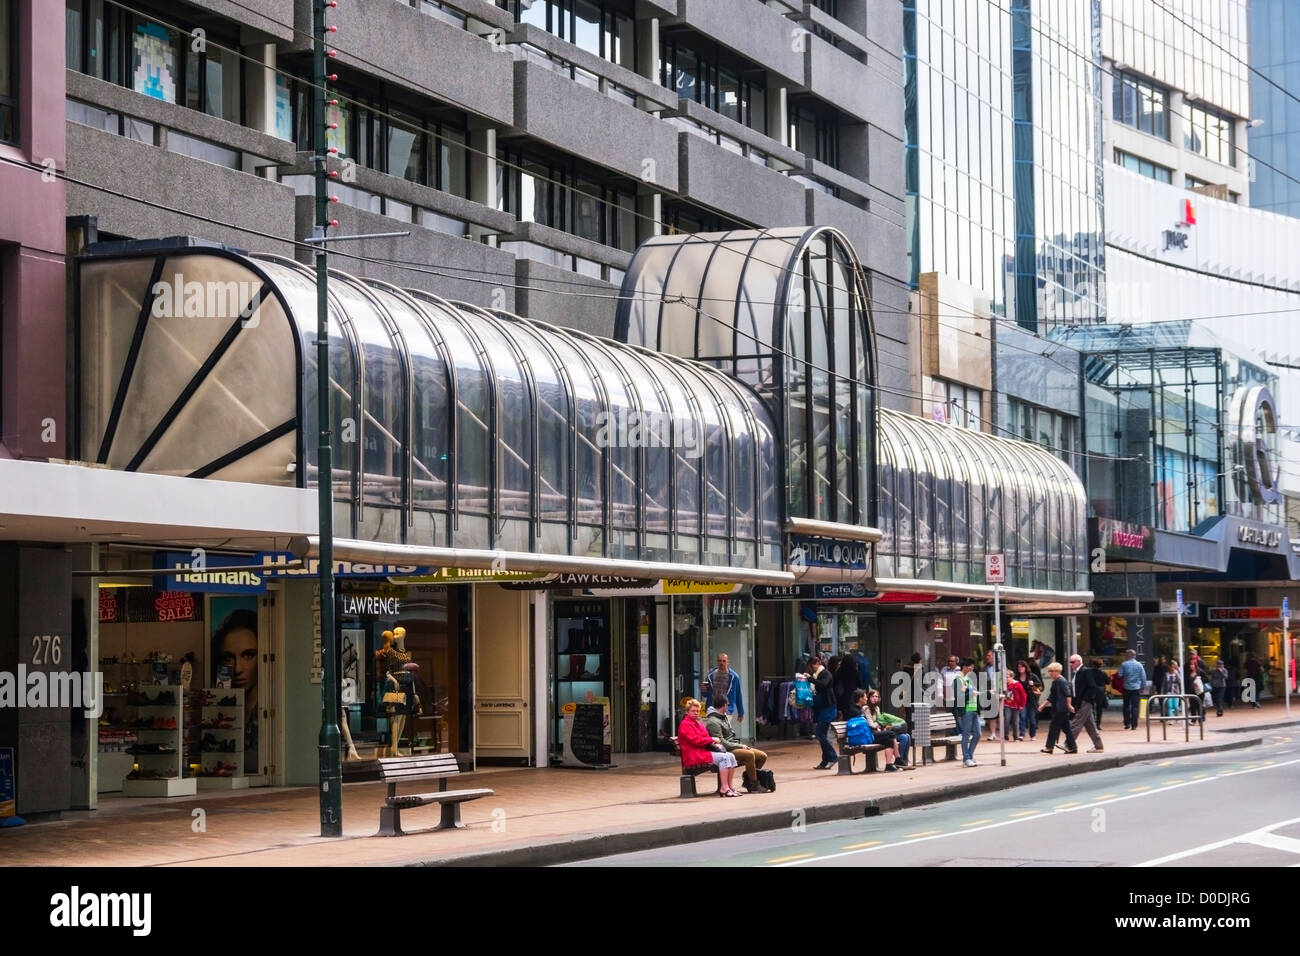 Lambton Quay, the main shopping street in Wellington, New Zealand, people sitting on benches, waiting at bus stop. - Stock Image